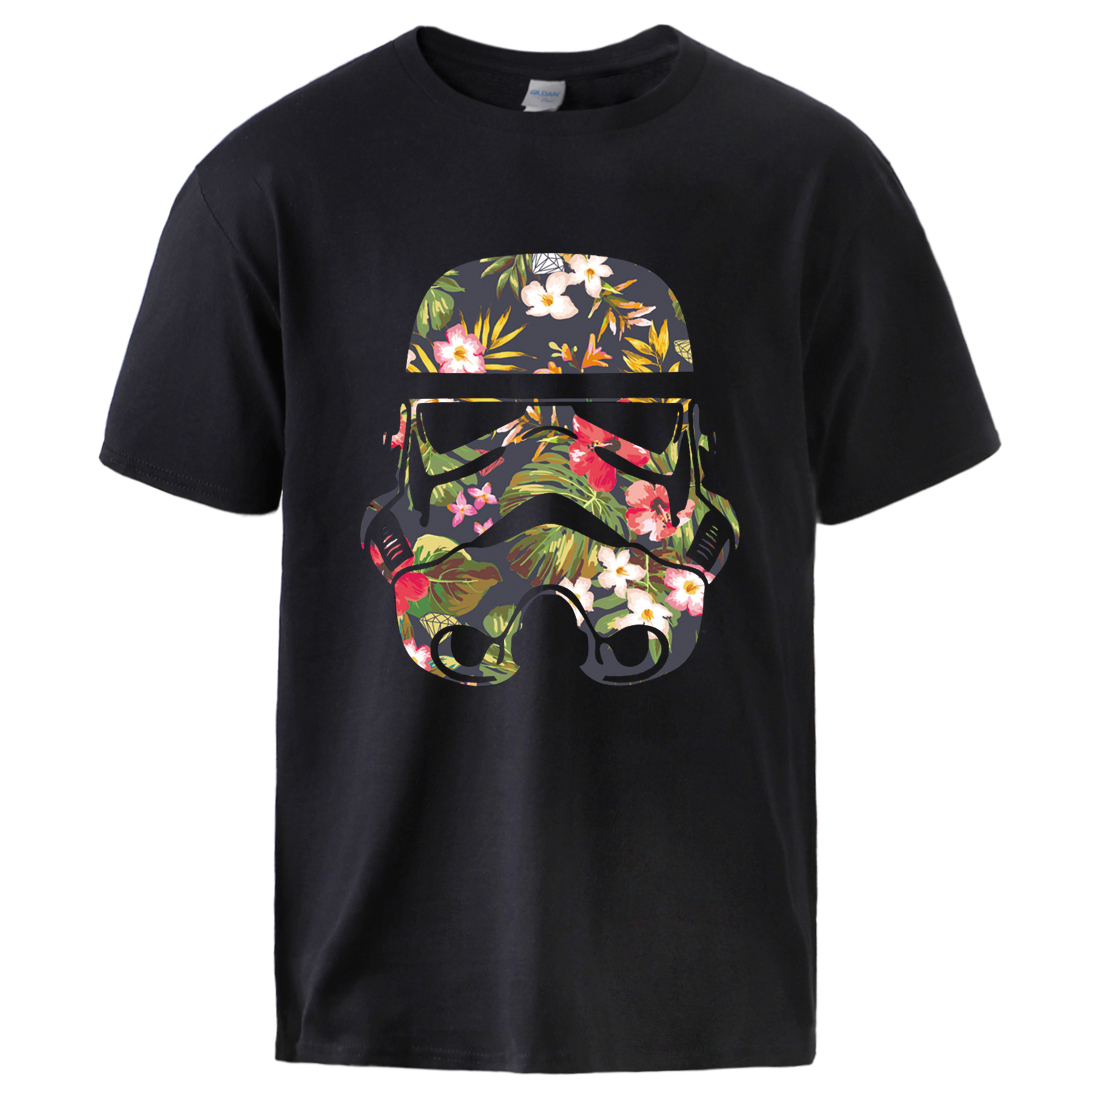 Stormtrooper Man T shirt Cotton Summer Top 2020 New Arrival Sportswear Short Sleeve Tee Male Casual Loose T shirts